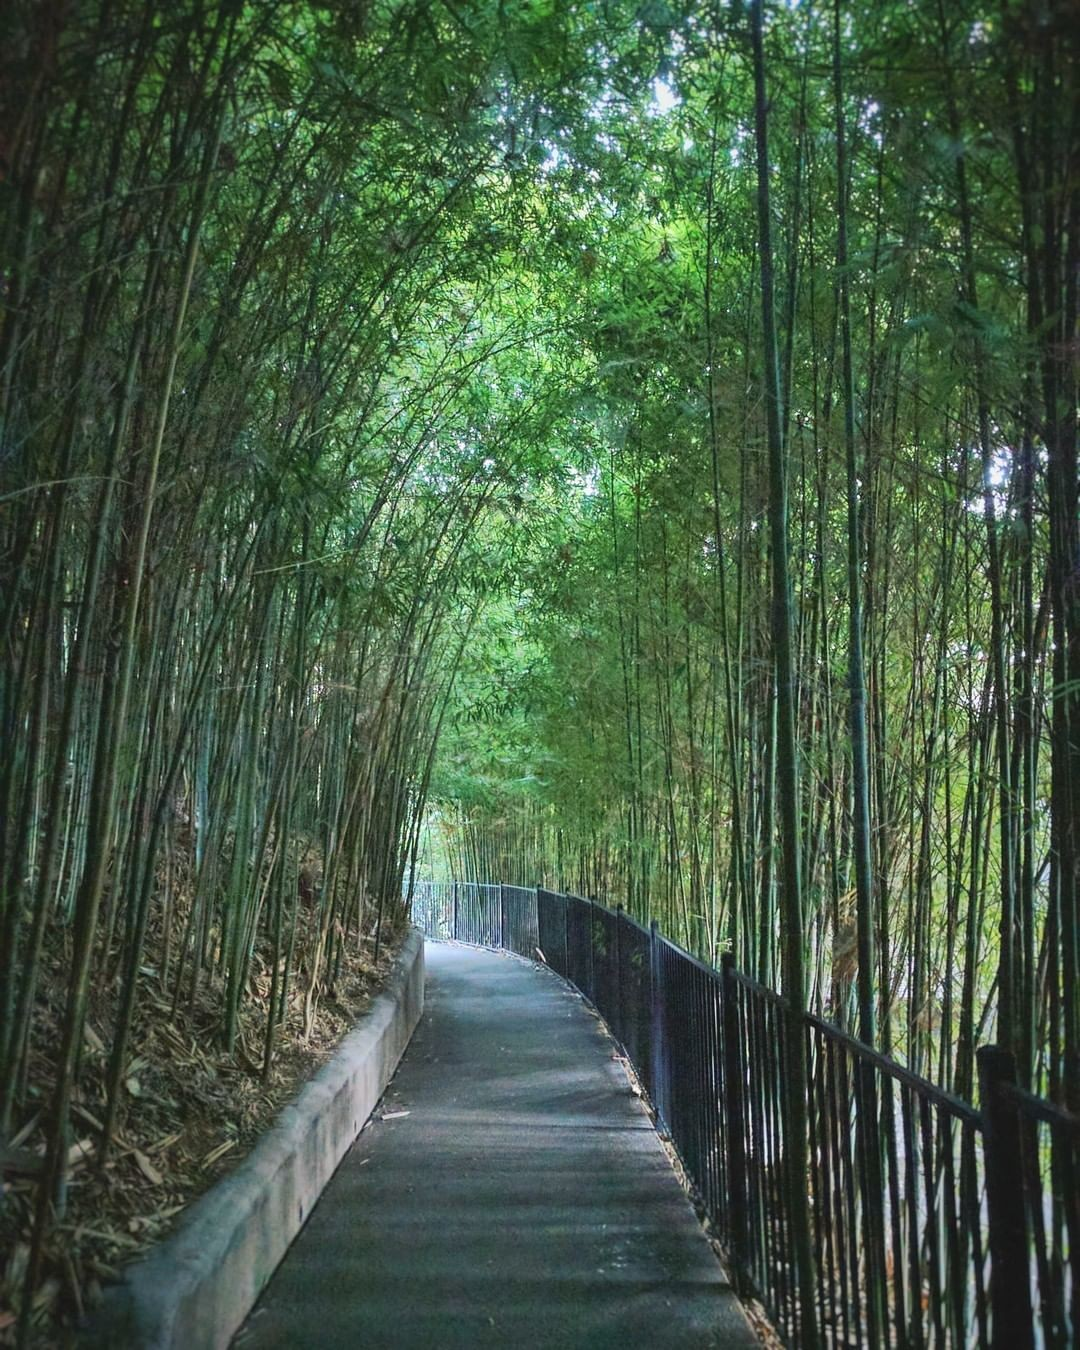 Walk through the bamboo …